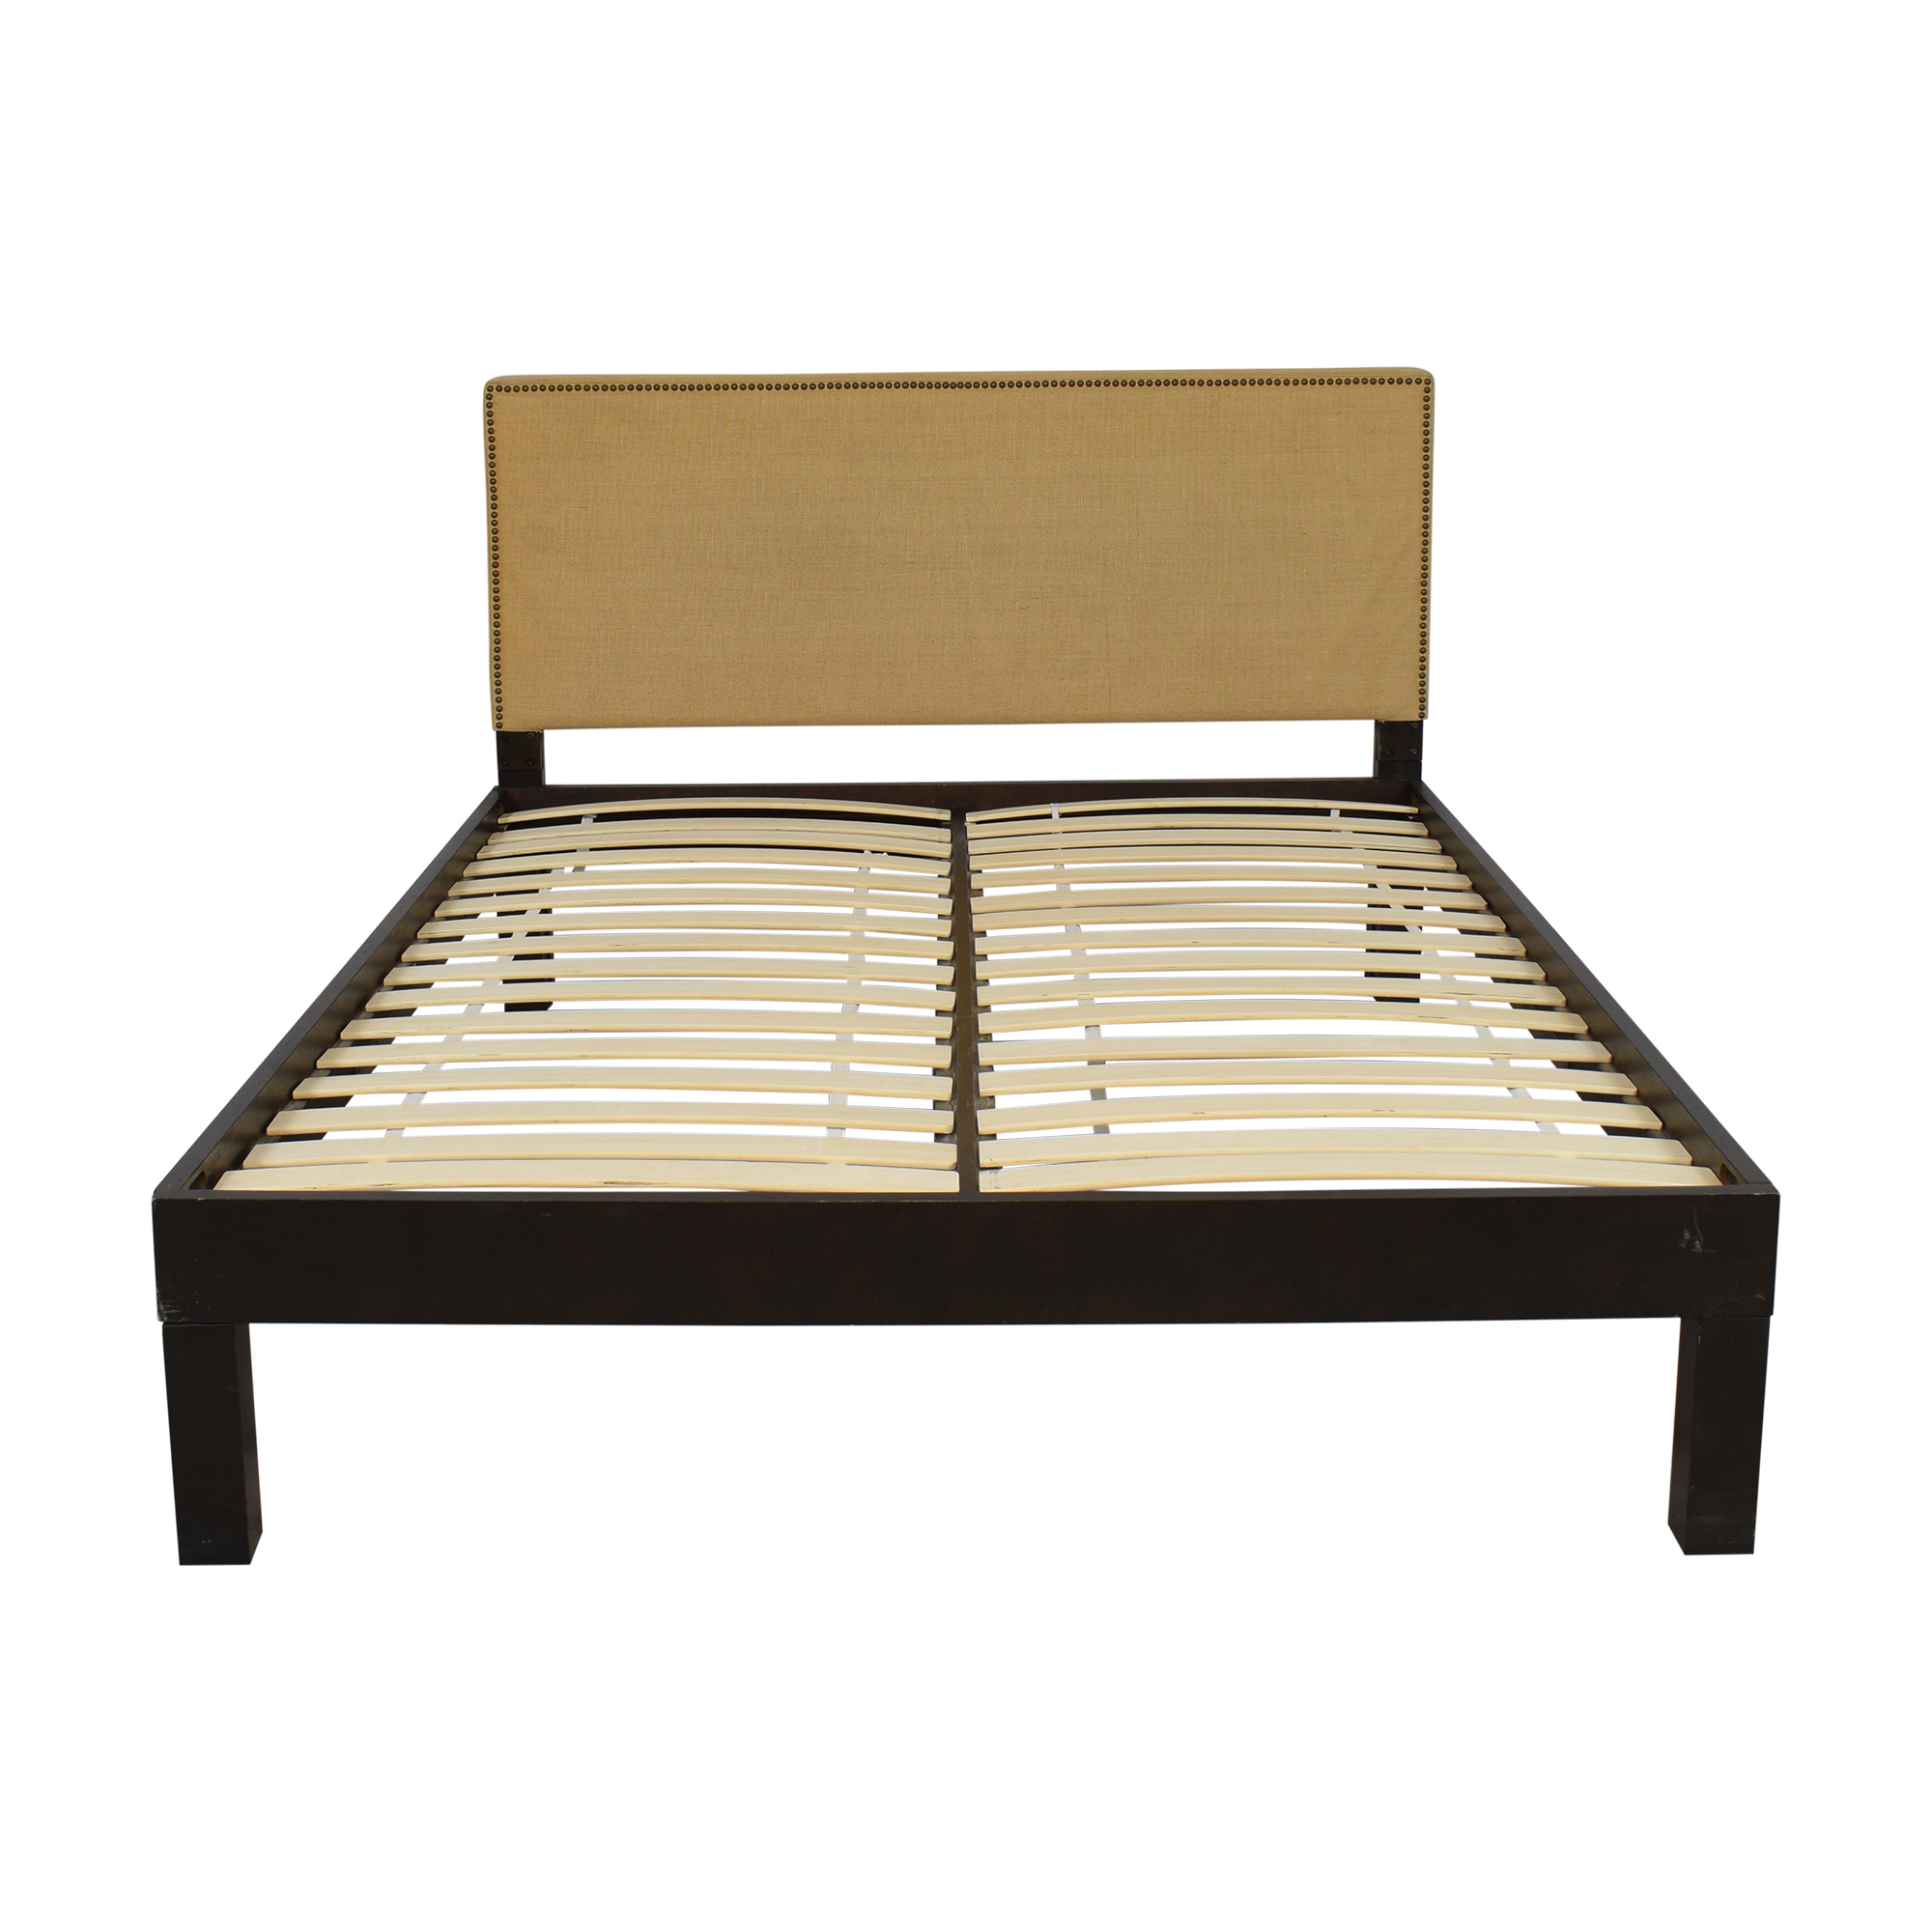 buy West Elm Nailhead Upholstered Queen Bed West Elm Bed Frames